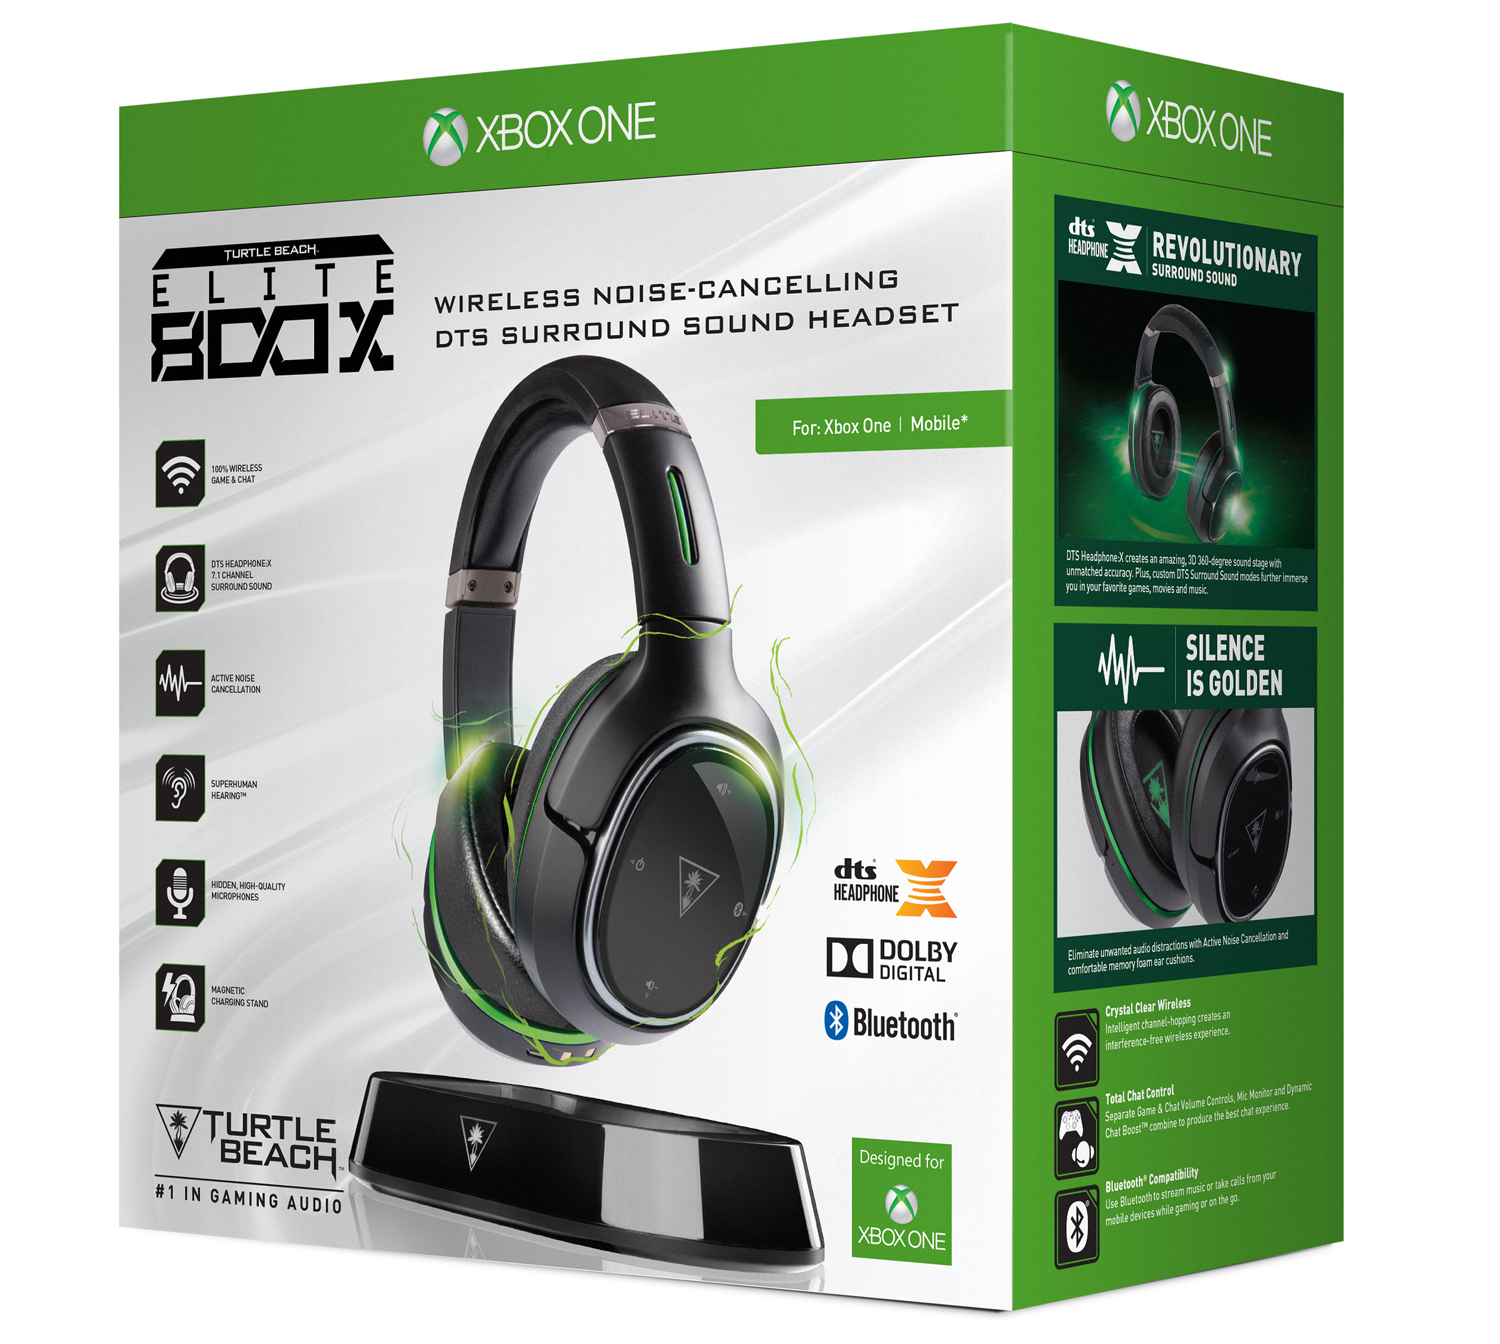 Turtle Beach Elite 800X Xbox One Wireless Surround Sound Headset